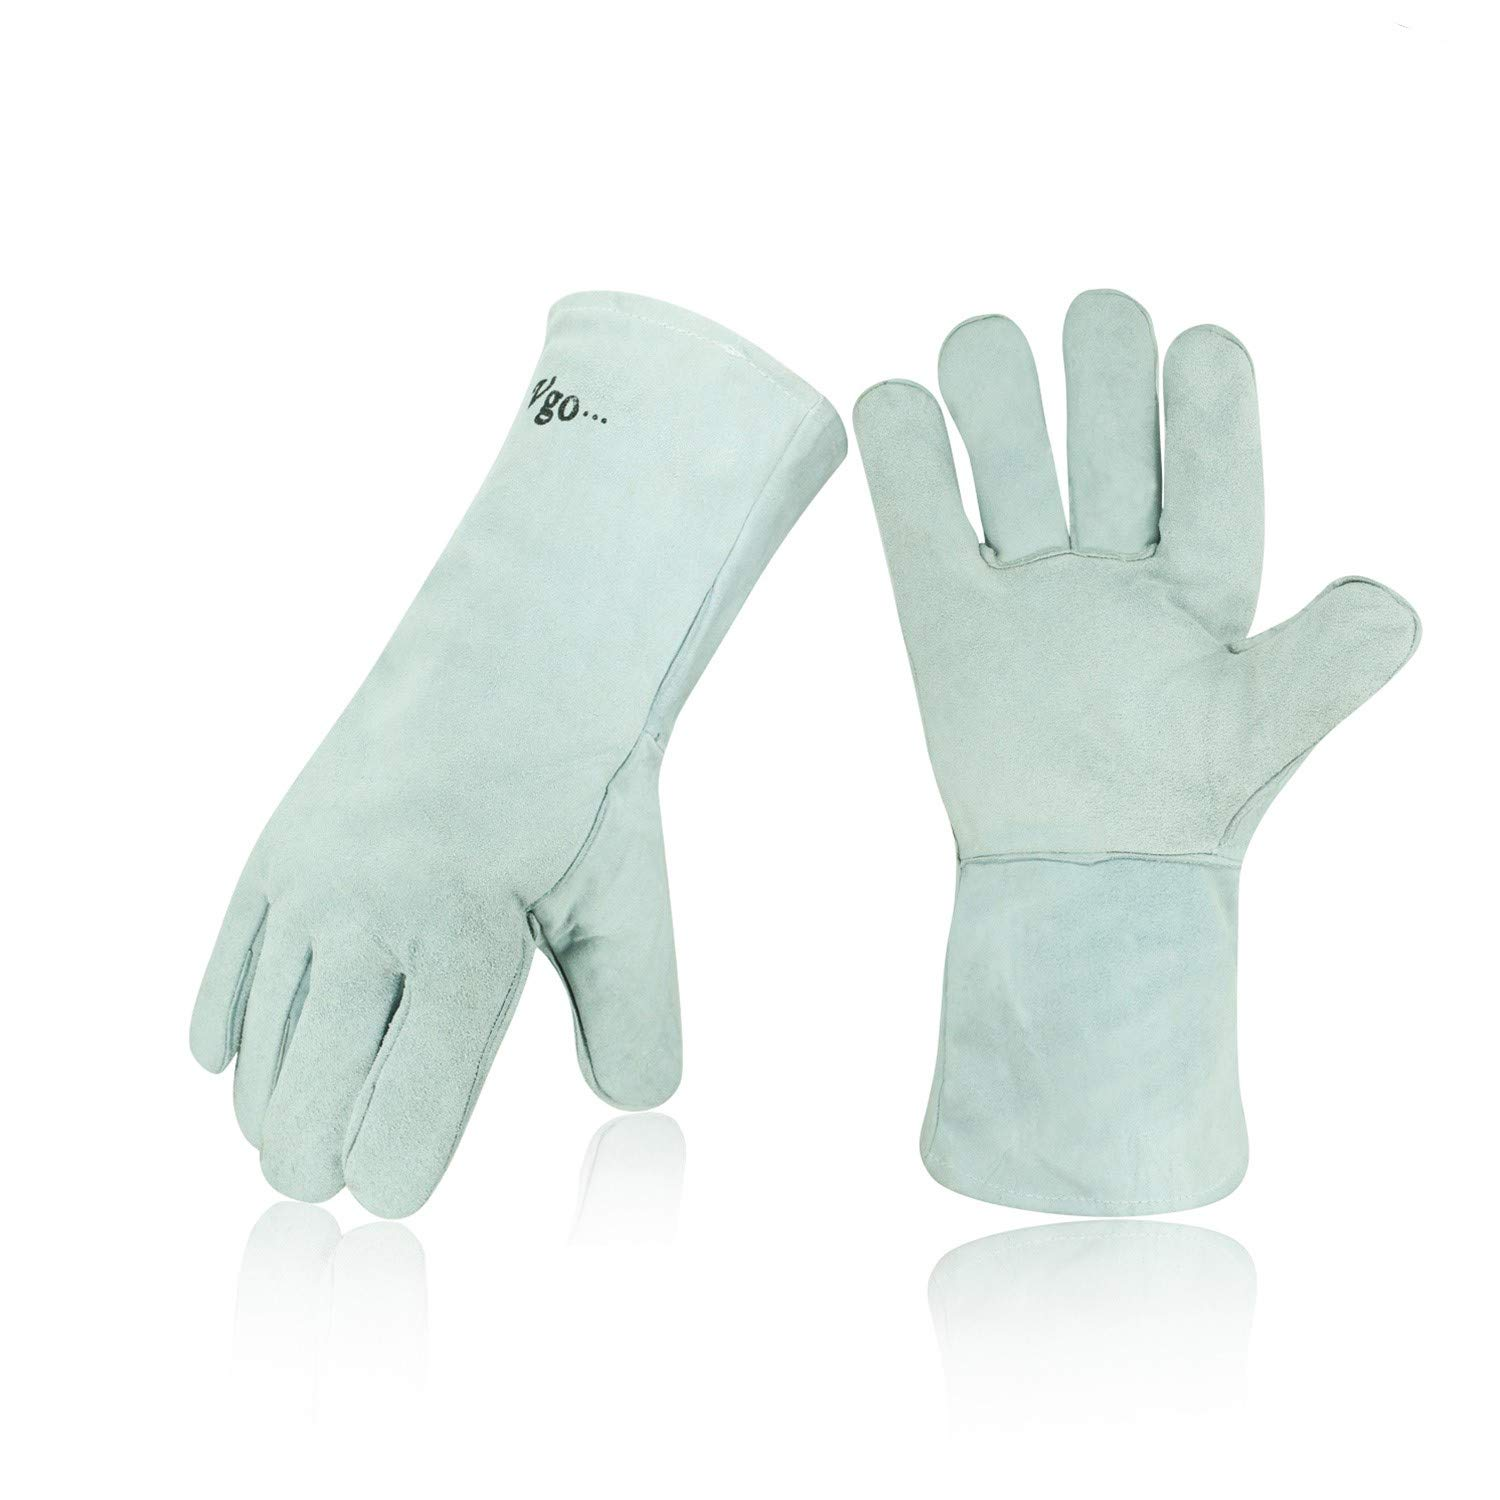 Vgo Cow Split Leather Welding Gloves For Oven/Grill/Fireplace/Stove/Pot Holder/Tig Welder/Mig/BBQ(1Pair, 13.5in, White, CB6501) Laborsing Safety Products Inc.